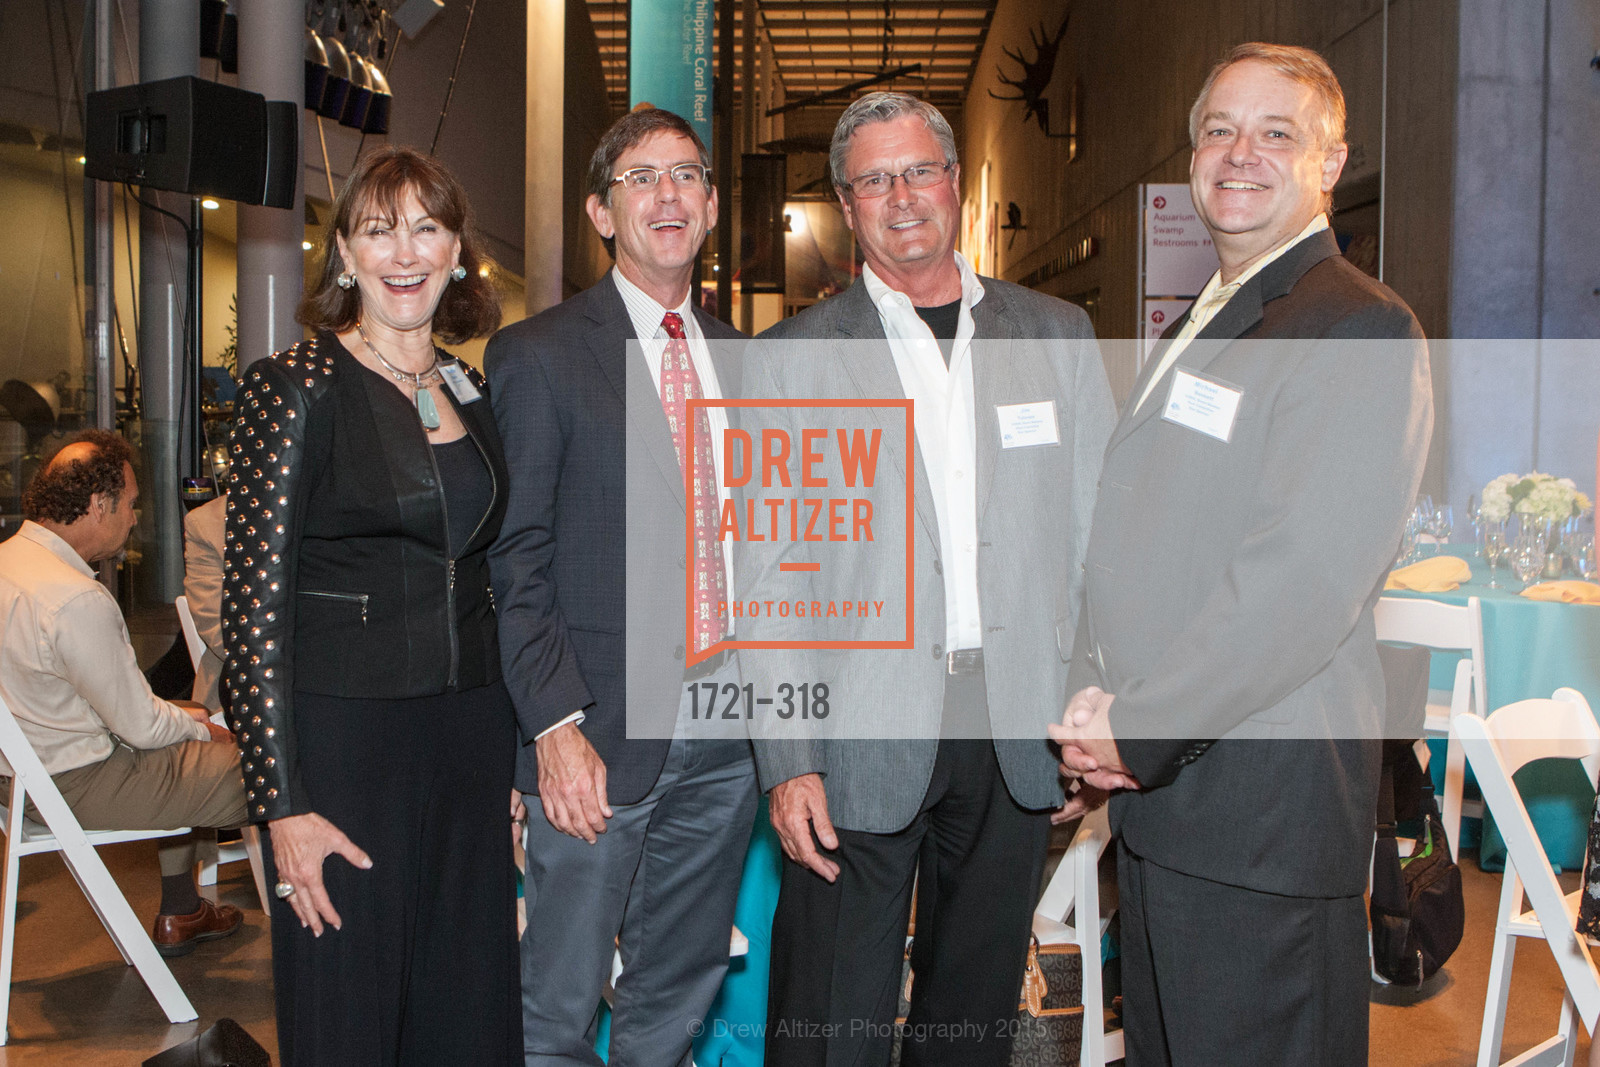 Elizabeth Wagner, Dan Dunn, Jim Tolonen, Michael Bennett, Coral Reef Alliance at the California Academy of Sciences, Academy of Sciences, September 26th, 2015,Drew Altizer, Drew Altizer Photography, full-service agency, private events, San Francisco photographer, photographer california